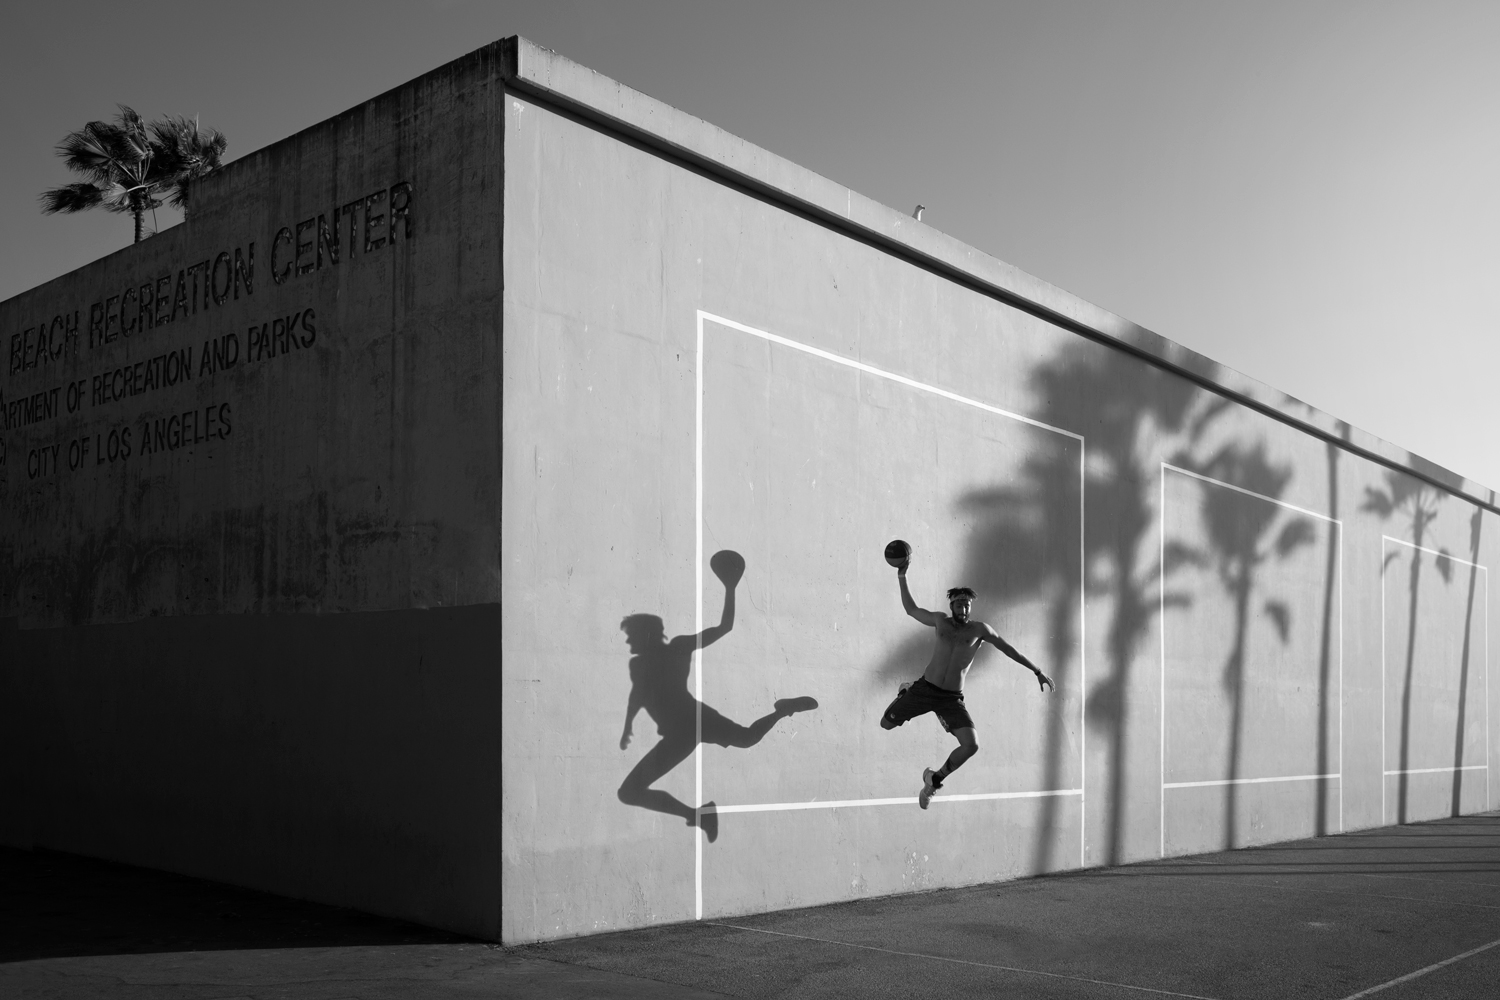 Guy jumping in front of the venice beach tennis court with his shaddow on the wall